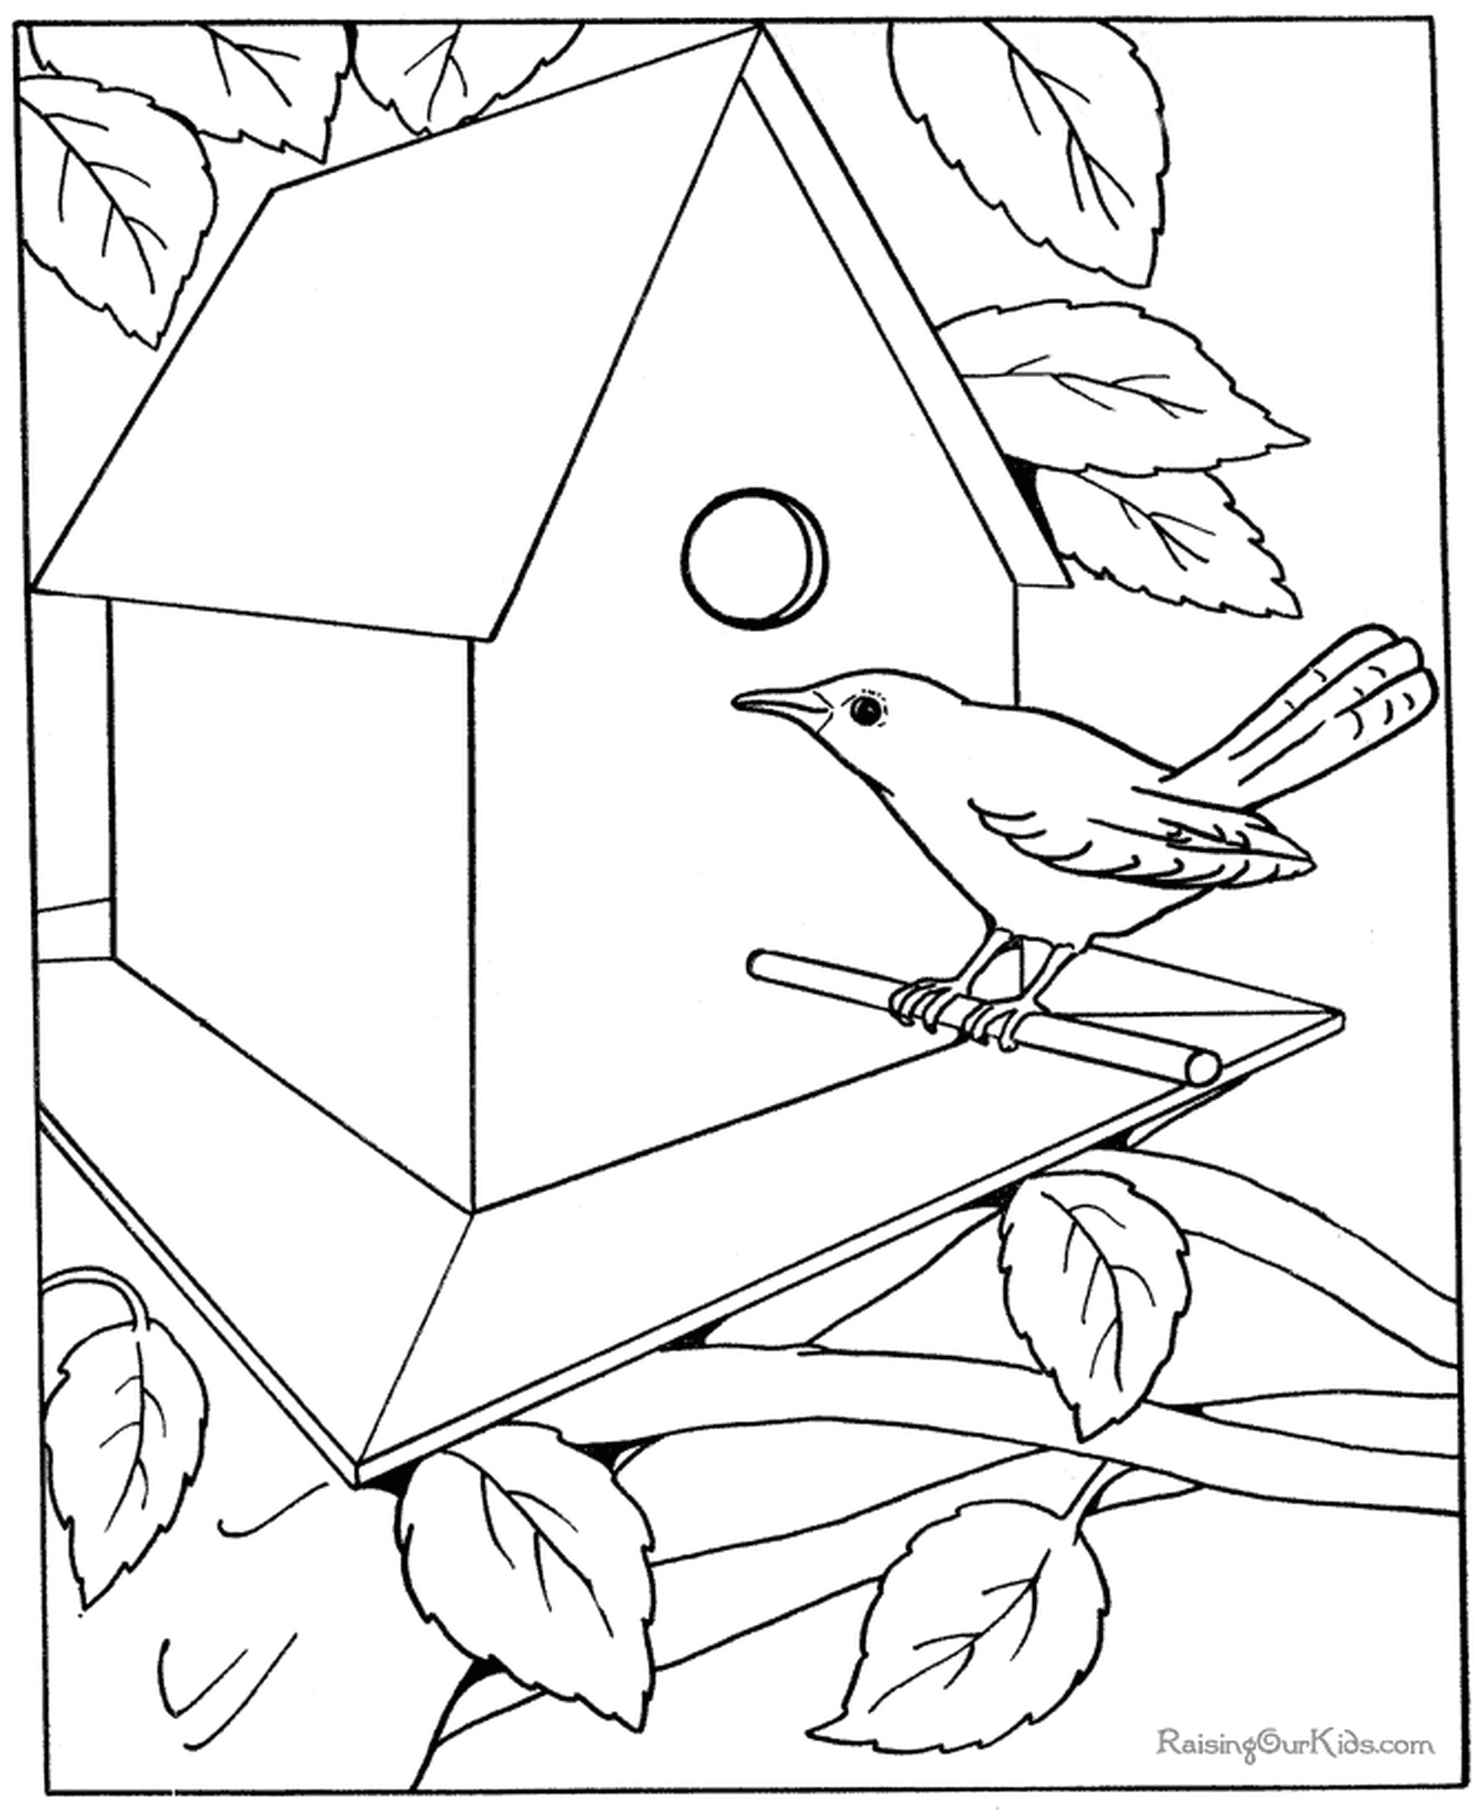 Nesting Box Coloring Page